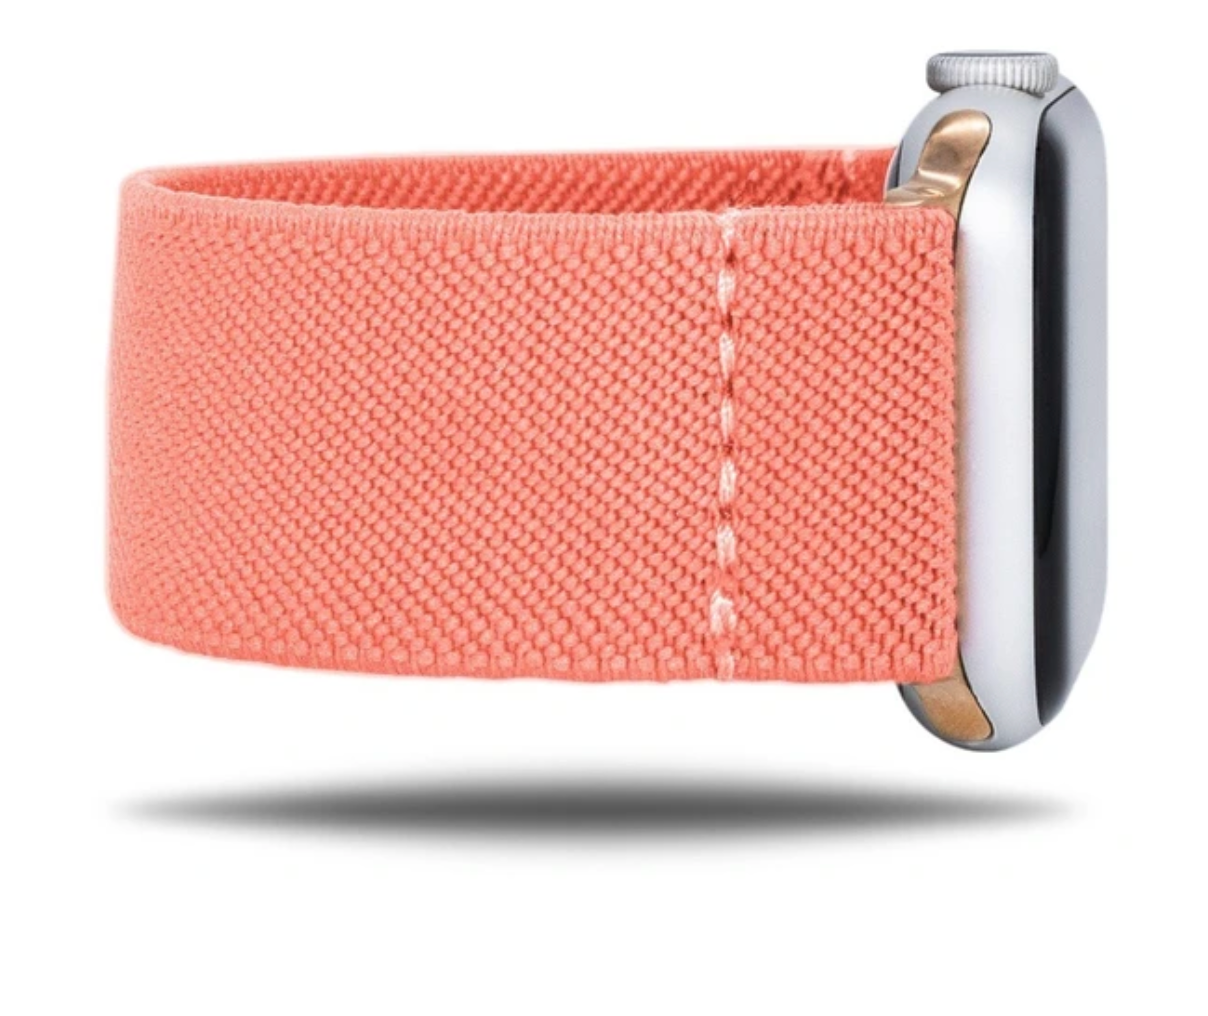 Braxley Apple Watch Band 42-44mm - 2 Colors WOMEN - Accessories - Jewelry - Watches & Watch Bands BRAXLEY BANDS Teskeys